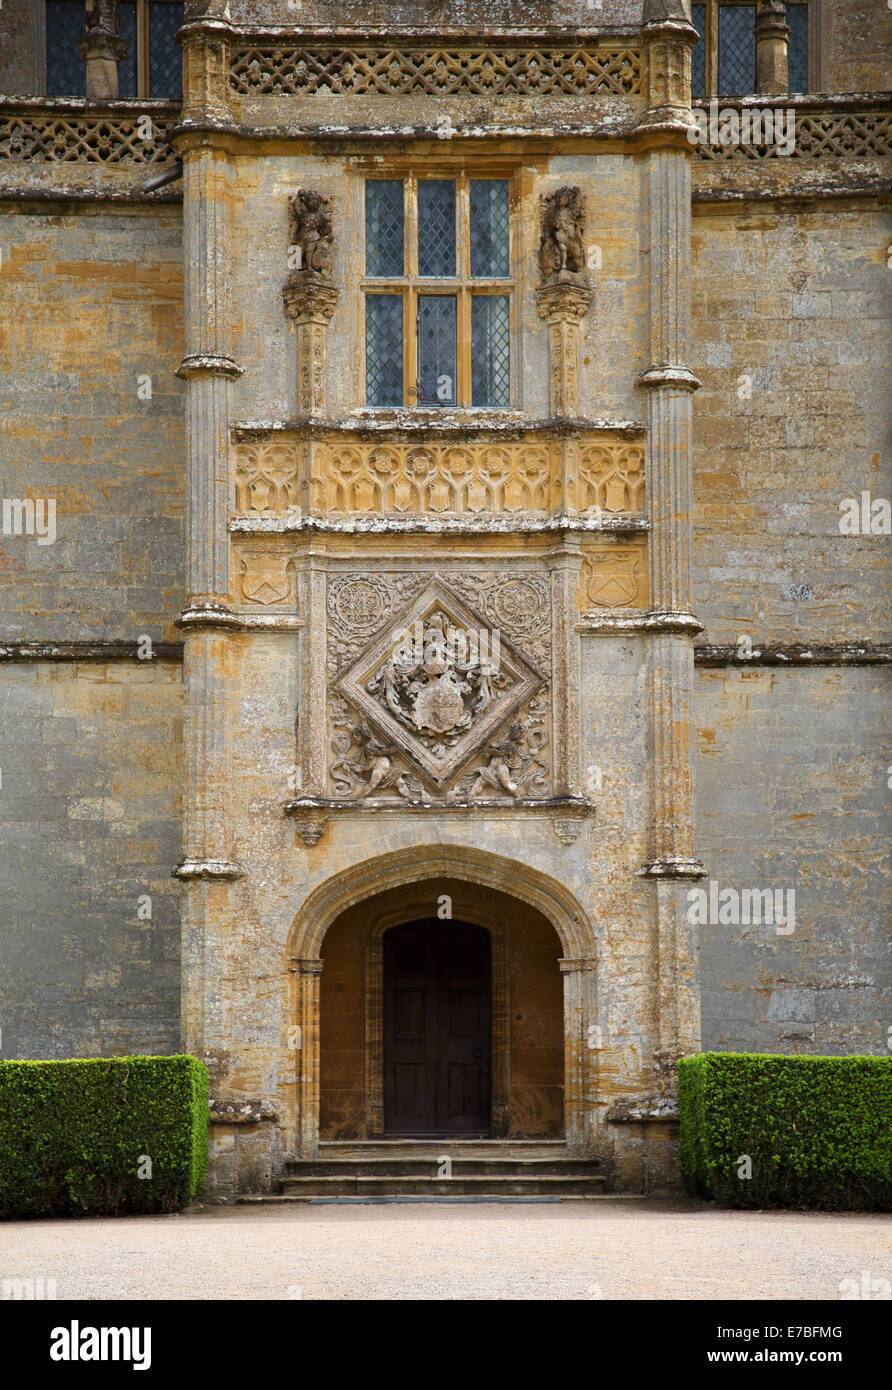 Entrance porch and coat of arms at Montacute House an Elizabethan Ham stone manor in Somerset Stock Photo